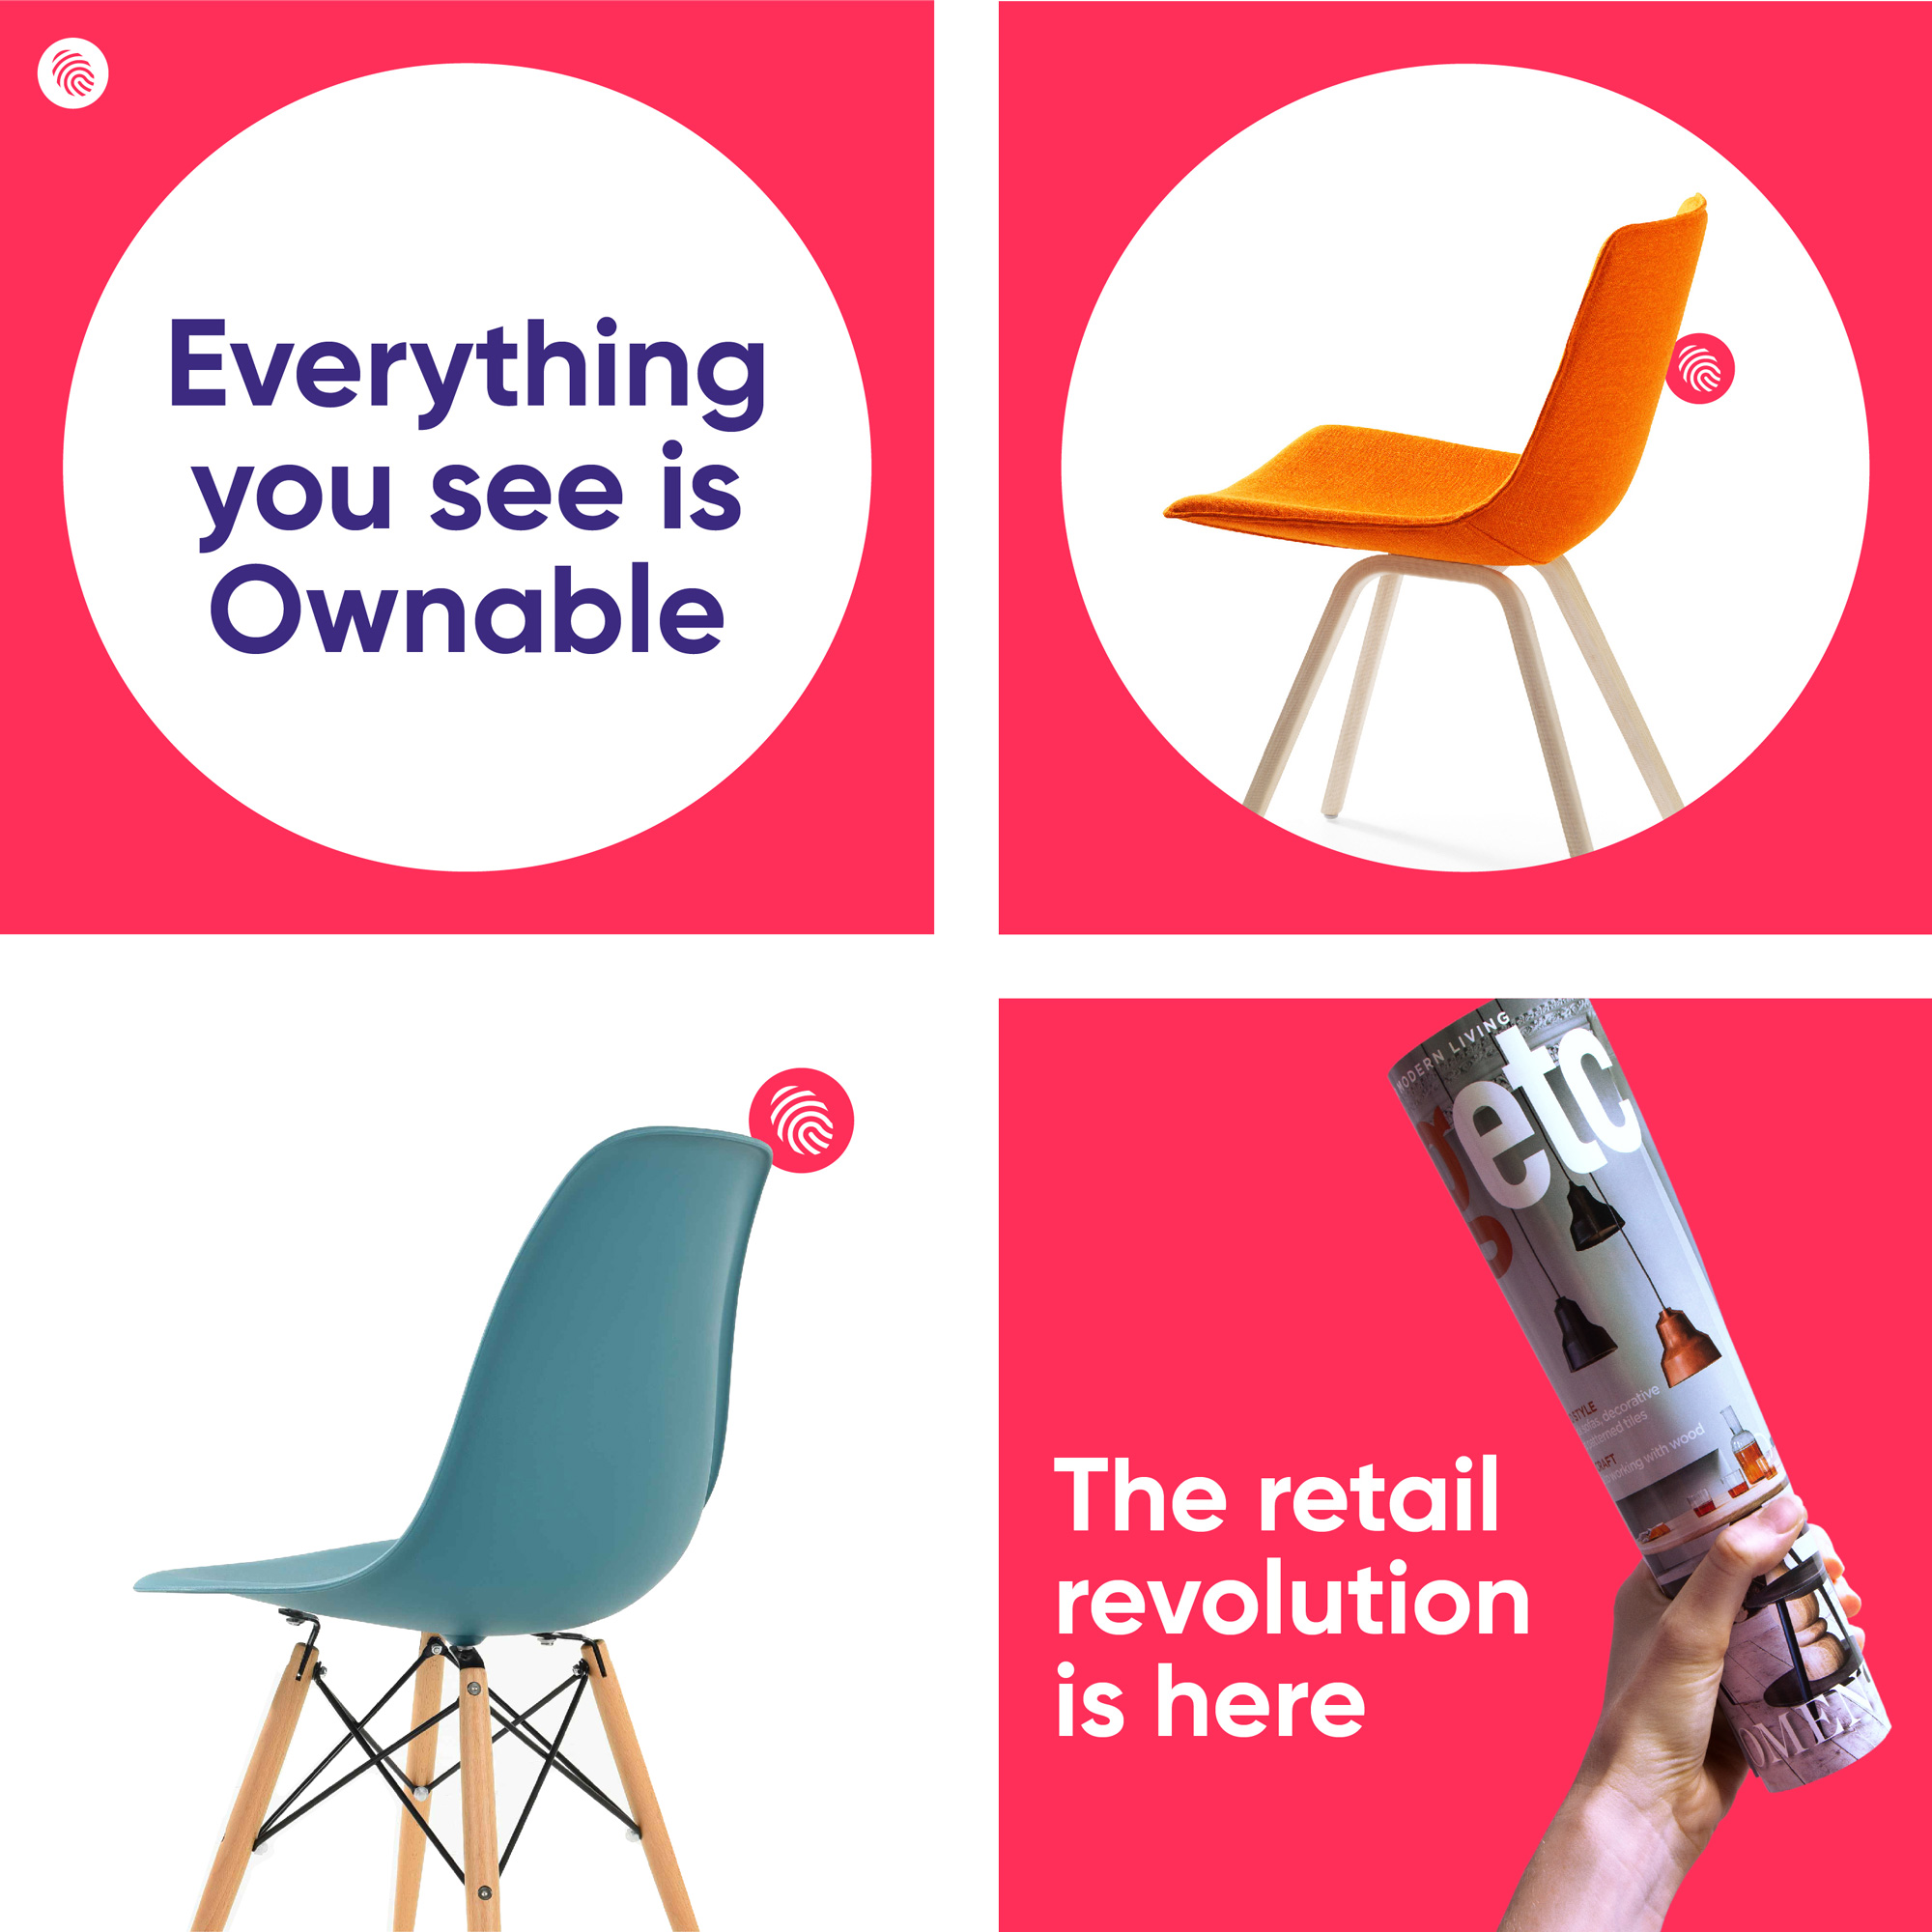 New Name, Logo, and Identity for Ownable by The Clearing